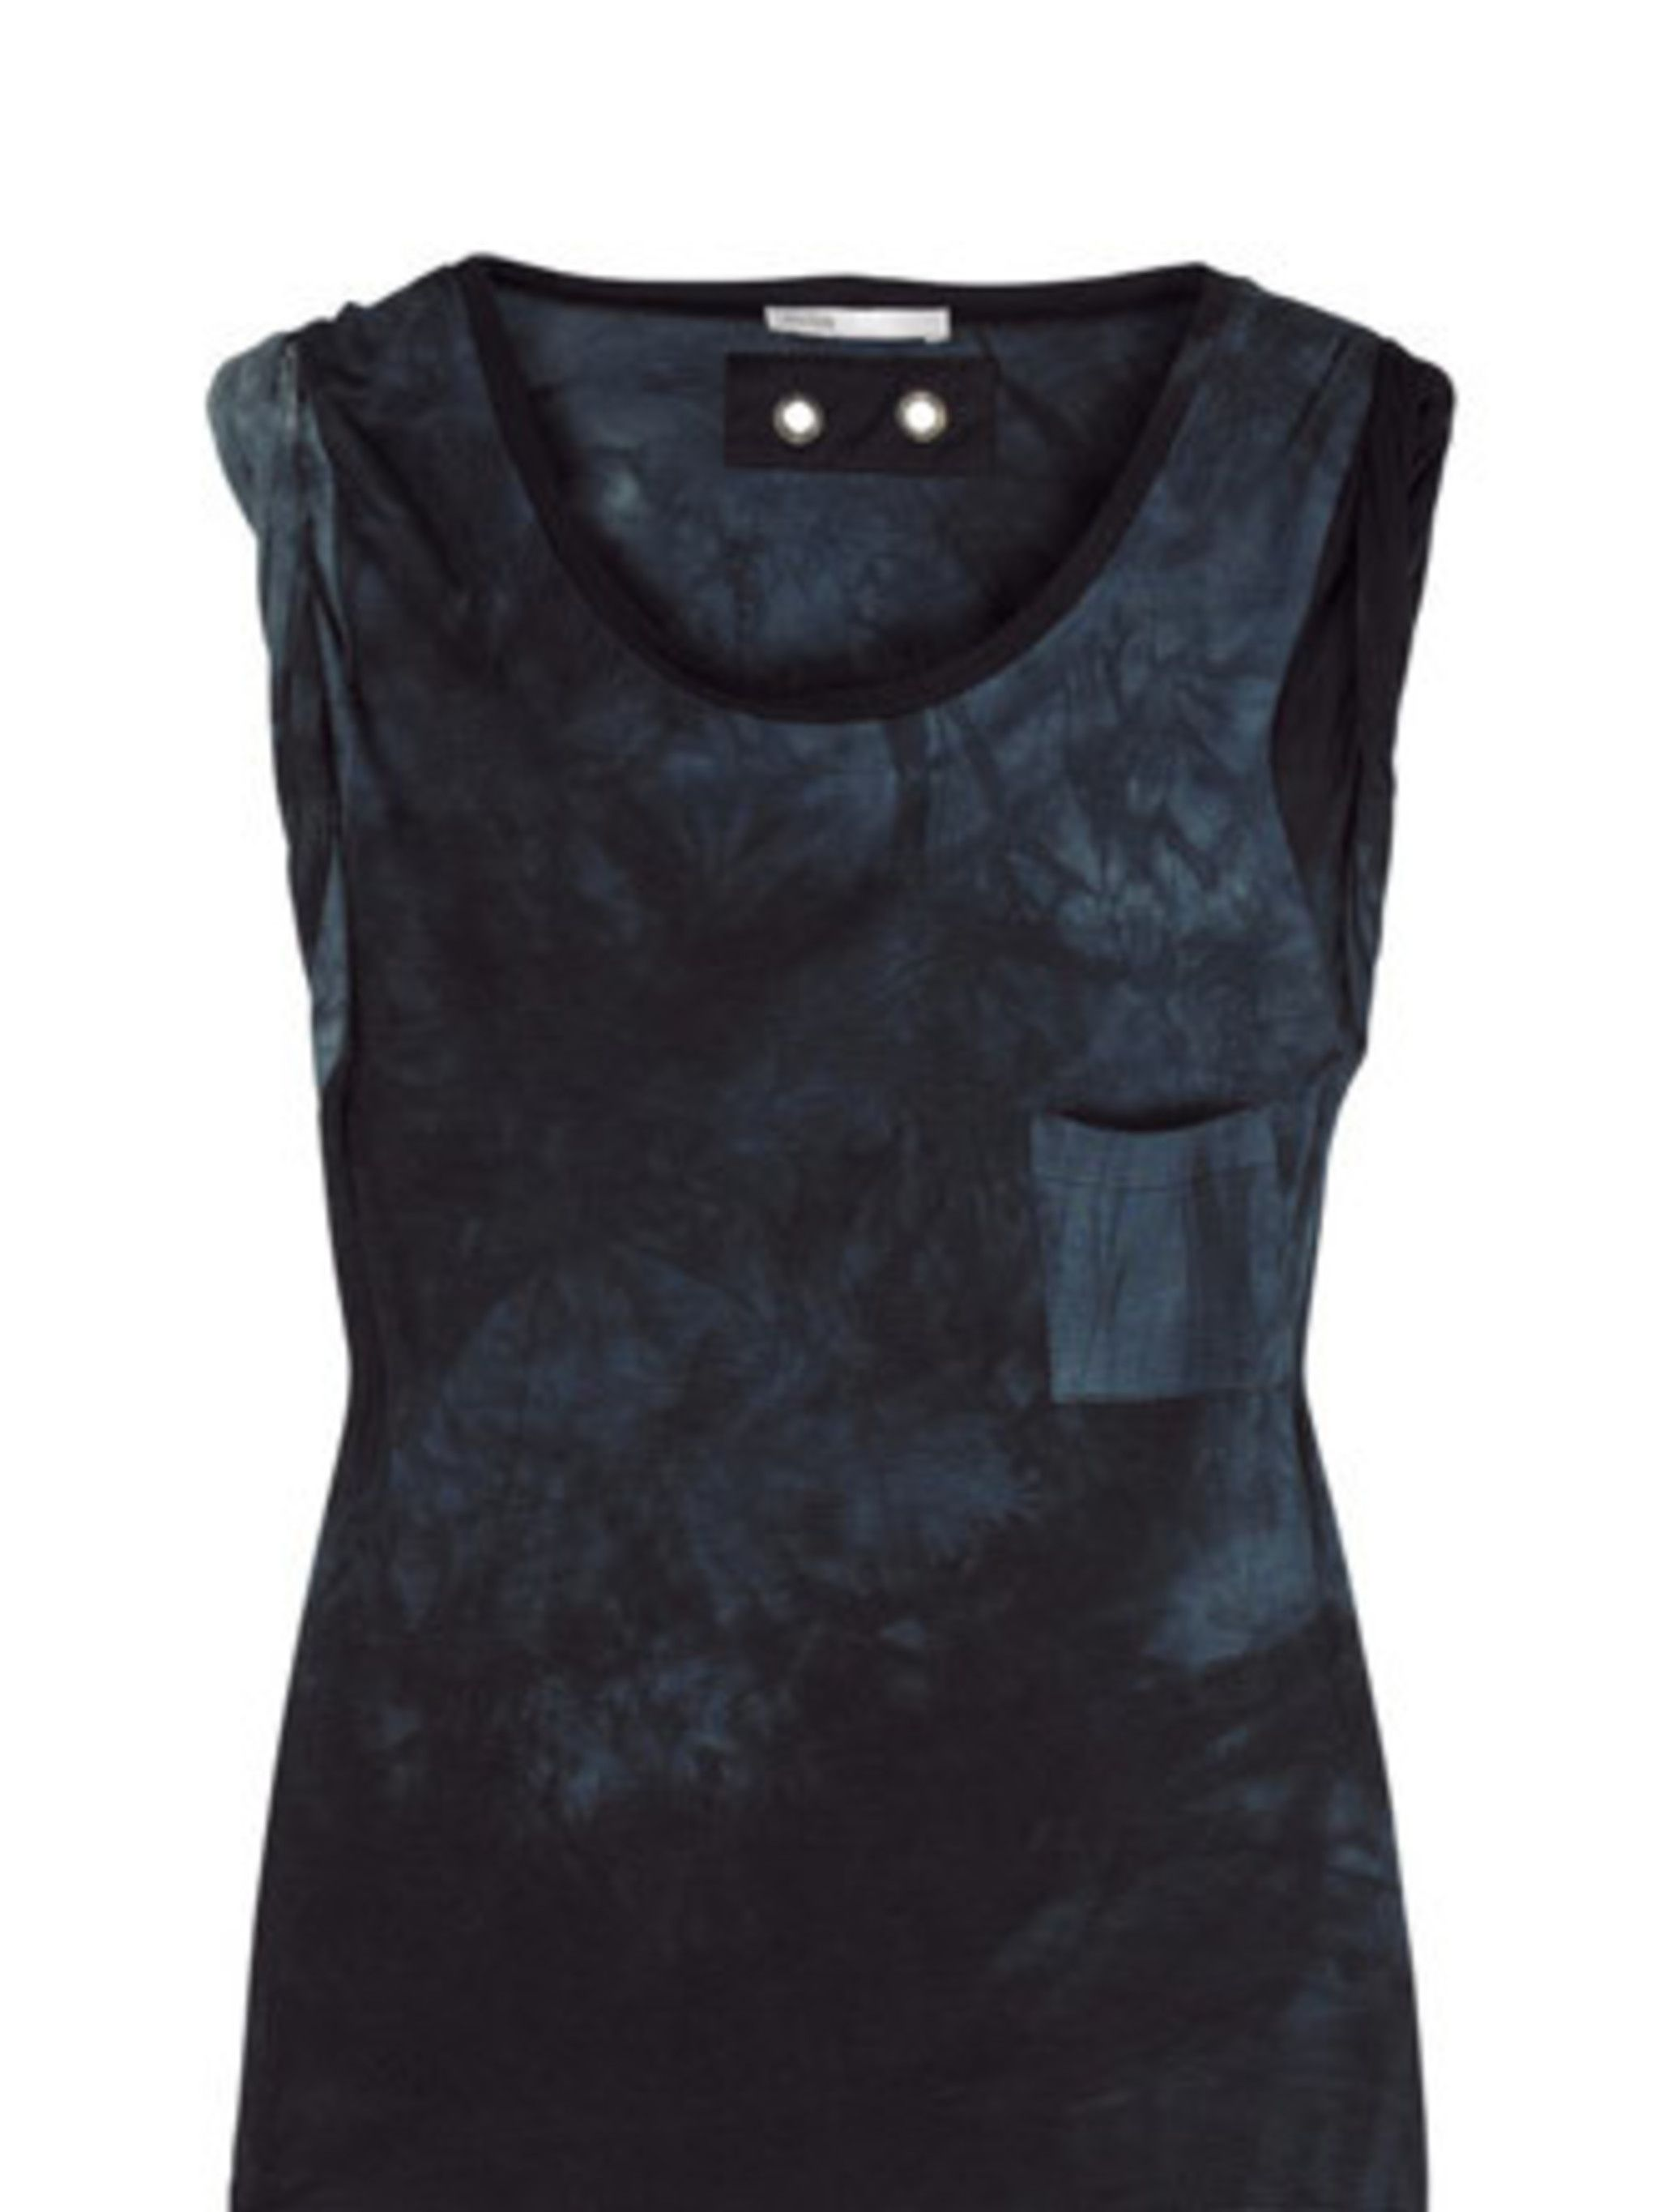 """<p>Summer isn't all about soft pastels and pretty florals, you know. Sometimes you want something a bit more edgy. This tie-dye tank from Maje will look tough paired with skinny jeans, killer heels and sunnies.</p><p>T-Shirt, £78 by Maje at <a href=""""http:"""